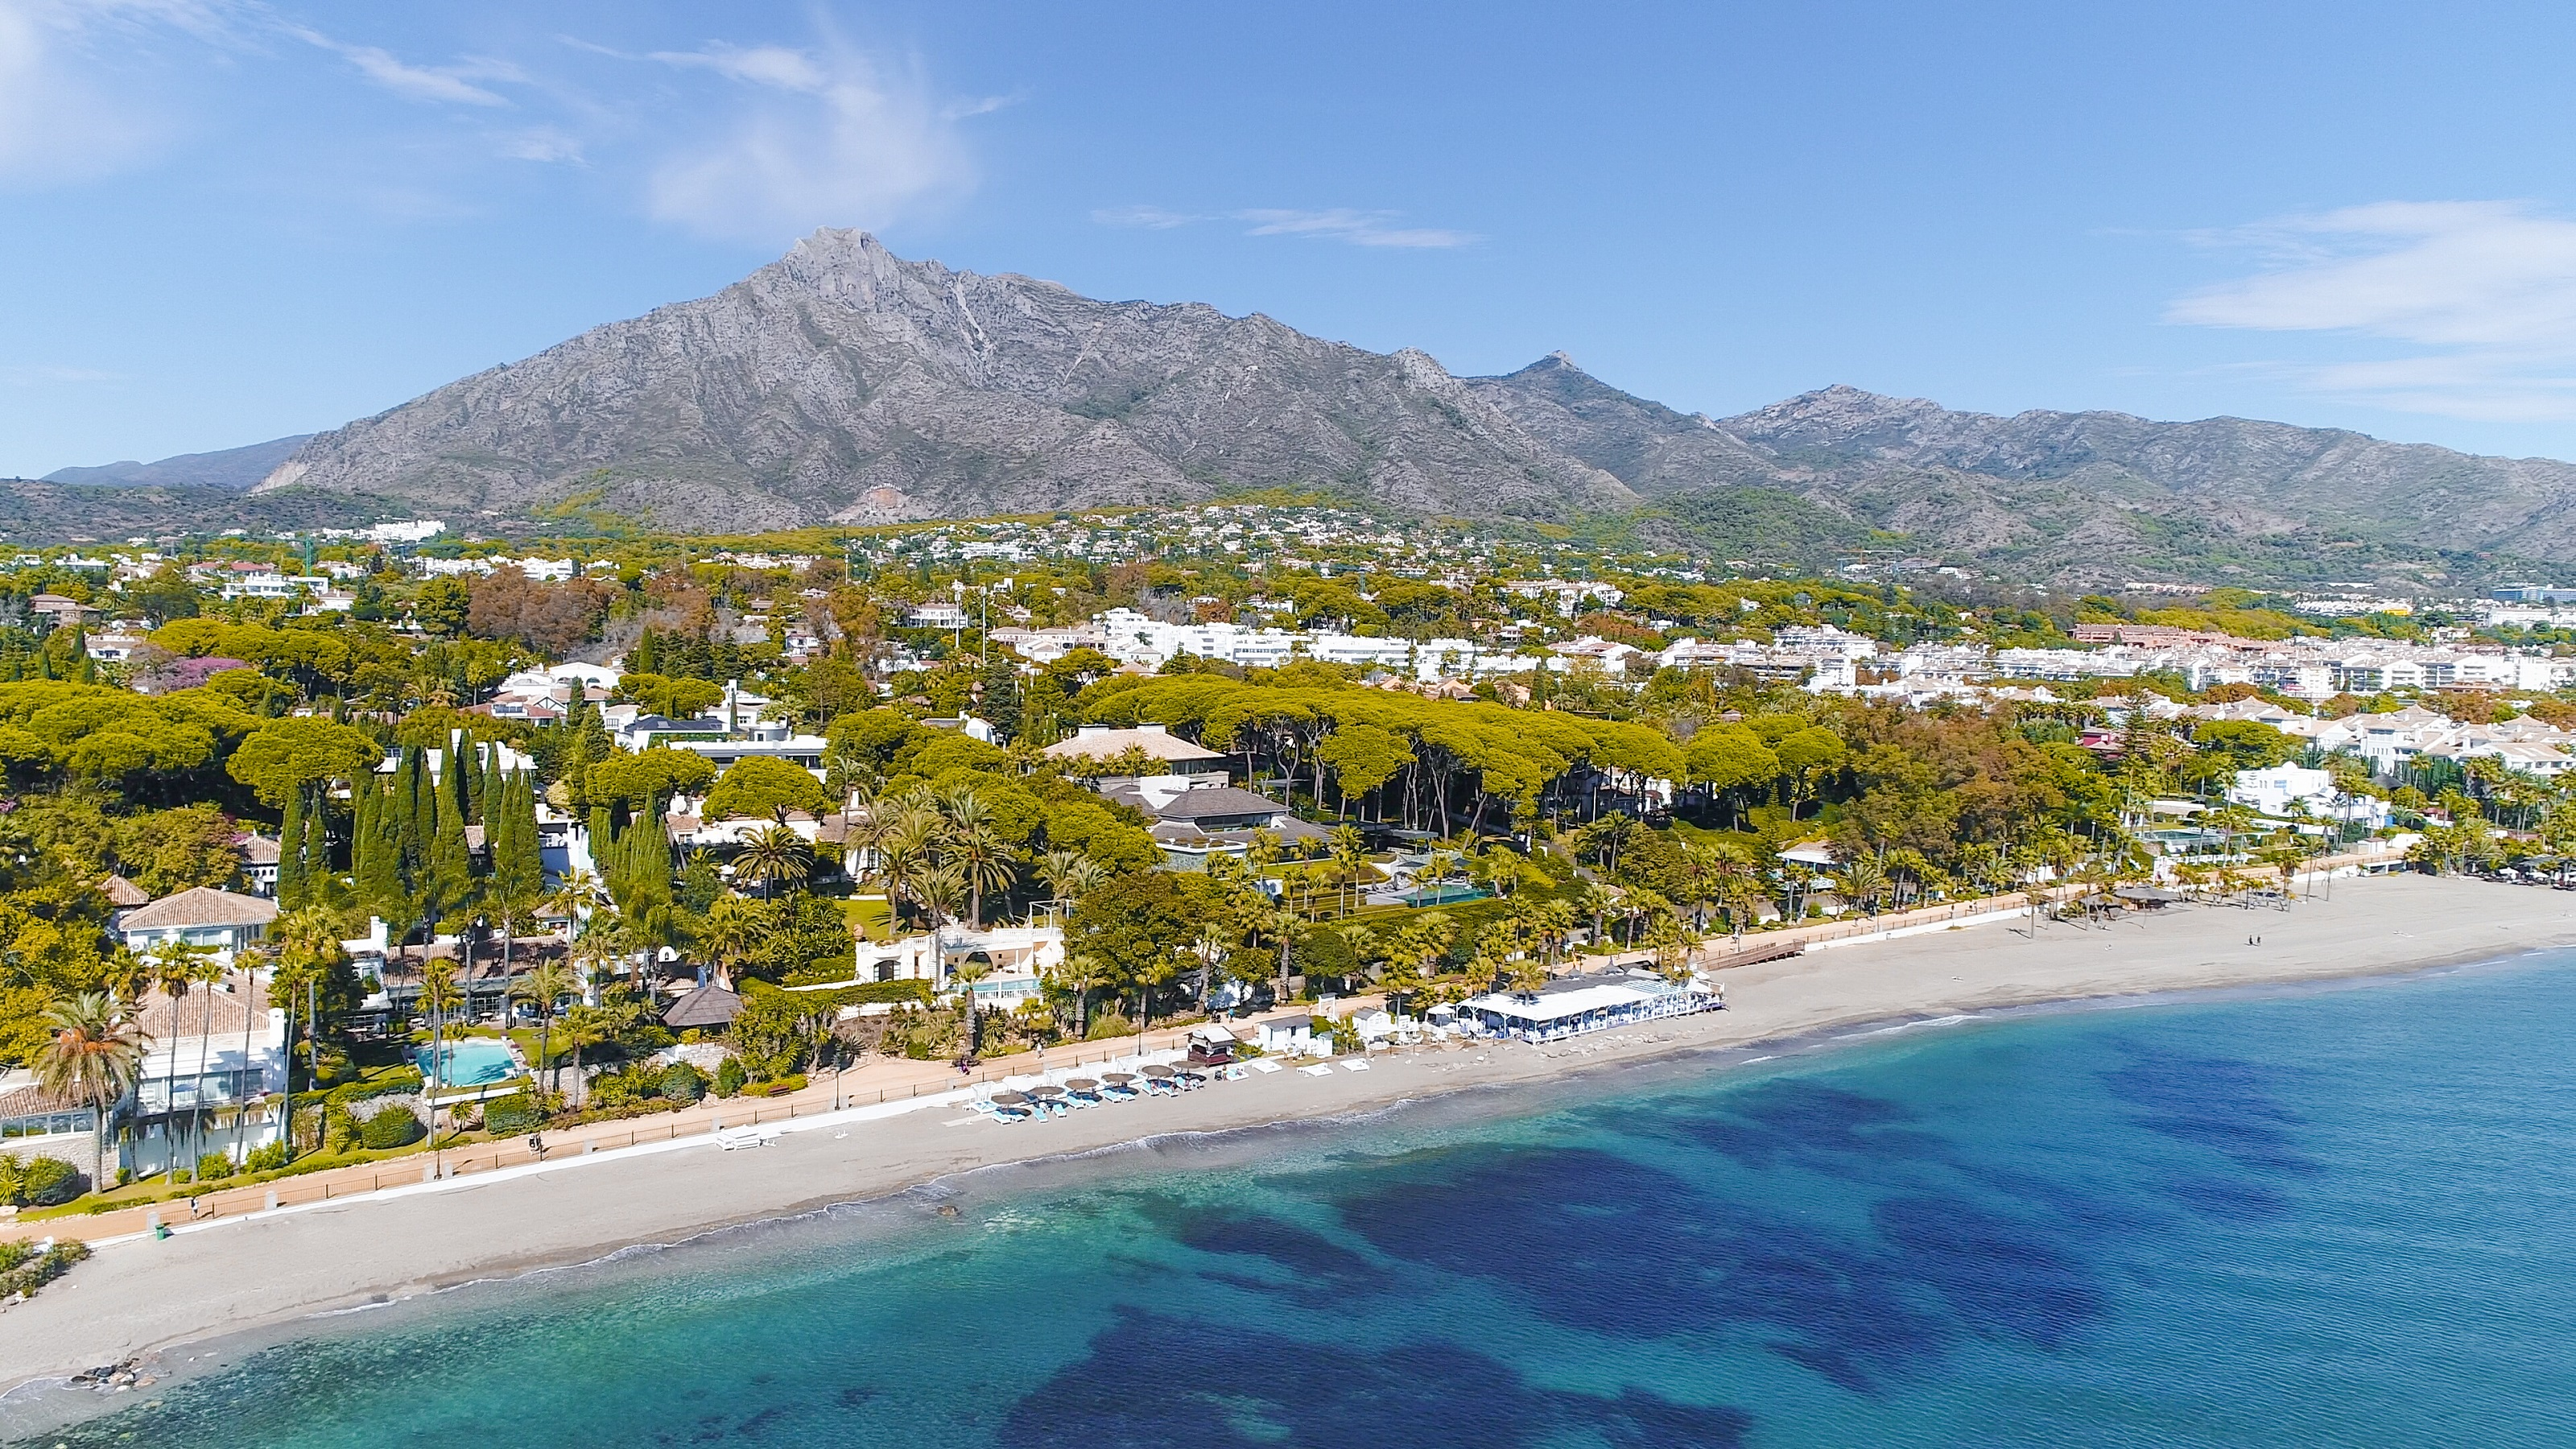 A coastline of the region Costa del Sol is about 190 km long, from Gibraltar in the west to Nerja in the east.